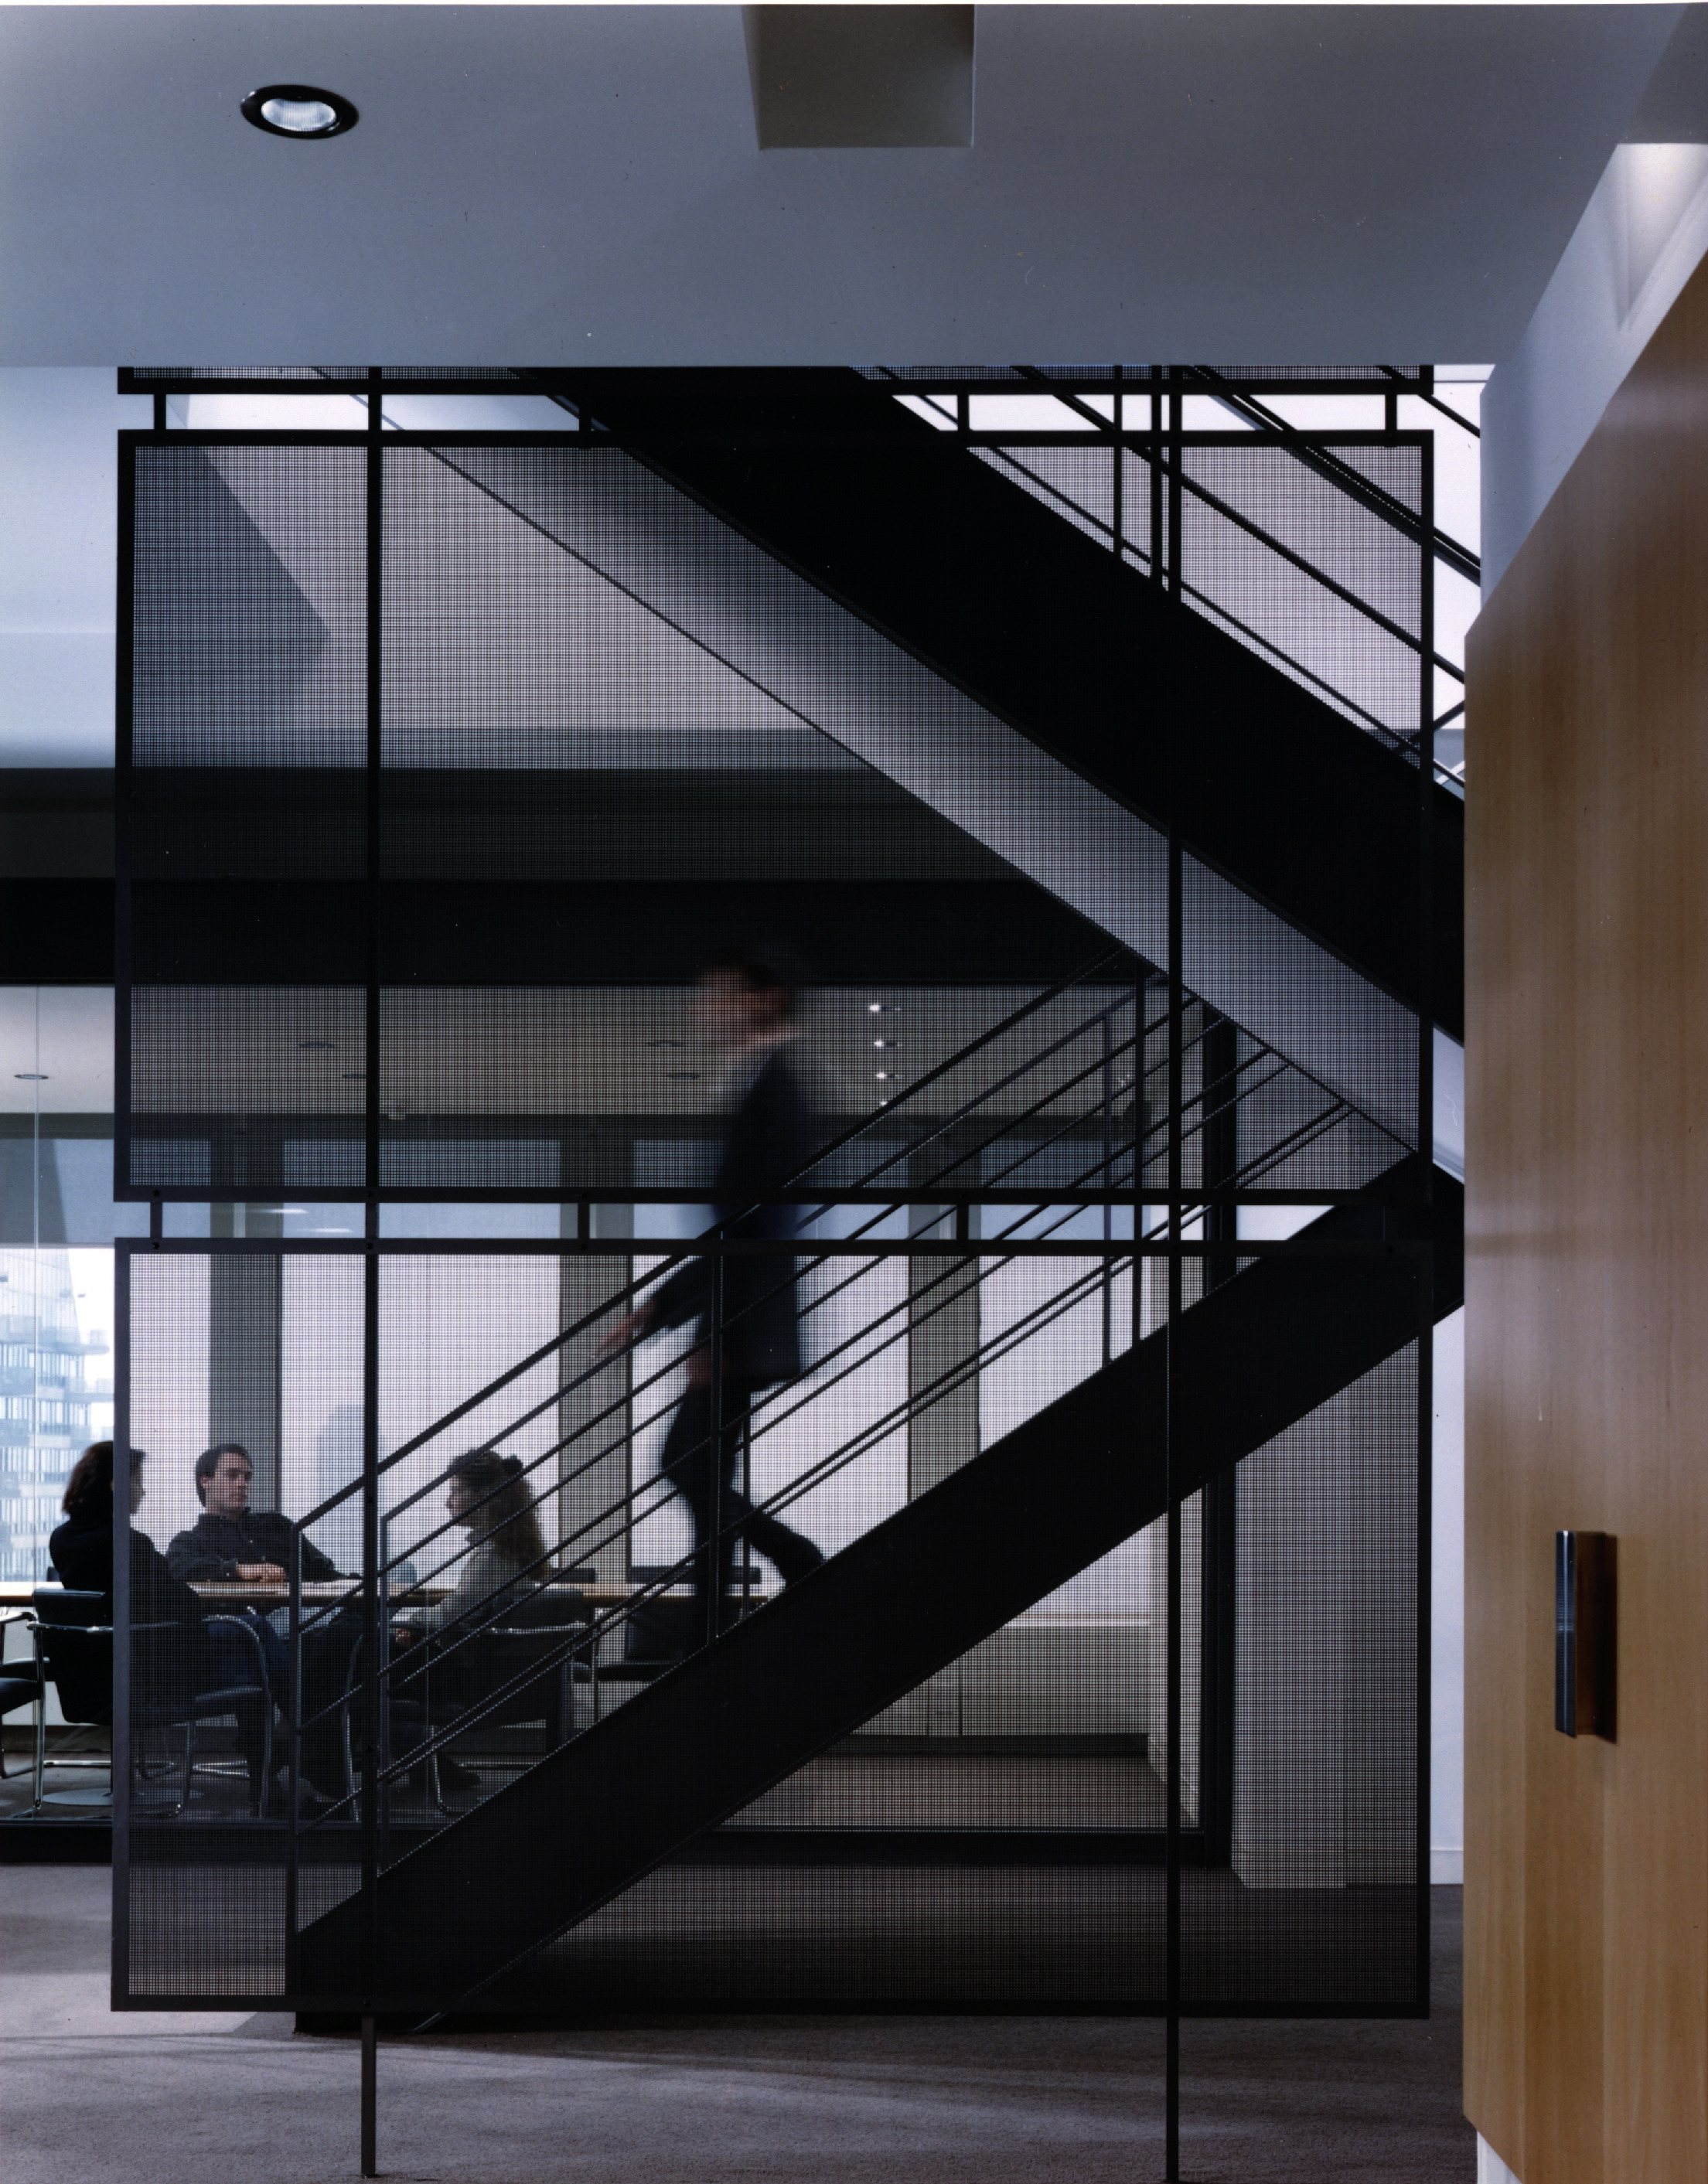 Stairs - Architecture